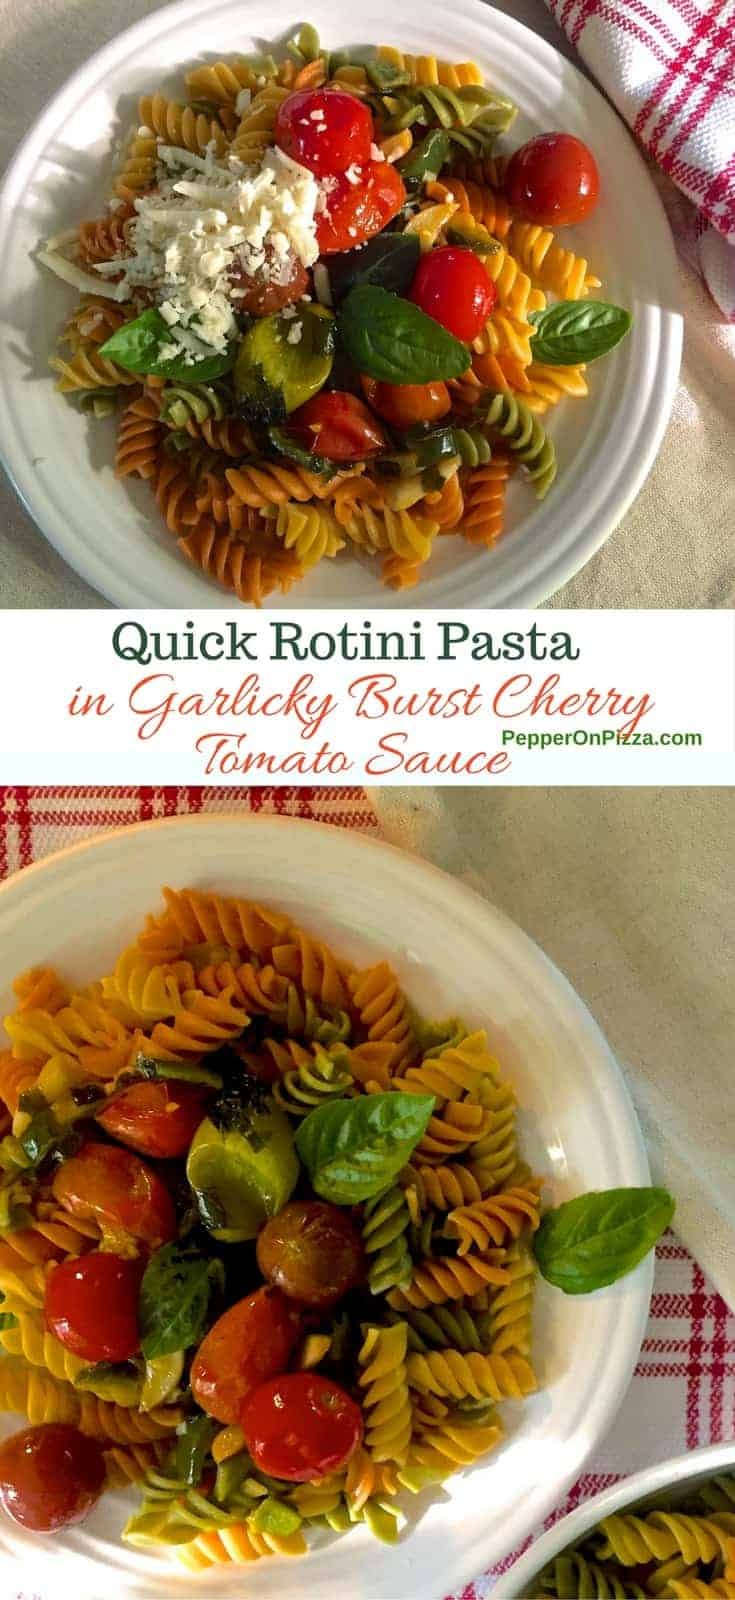 Easy, quick Rotini Pasta in Garlicky Burst Cherry Tomato Sauce made from colourful, juicy cherry tomatoes, garlic, fresh basil and spirally pasta